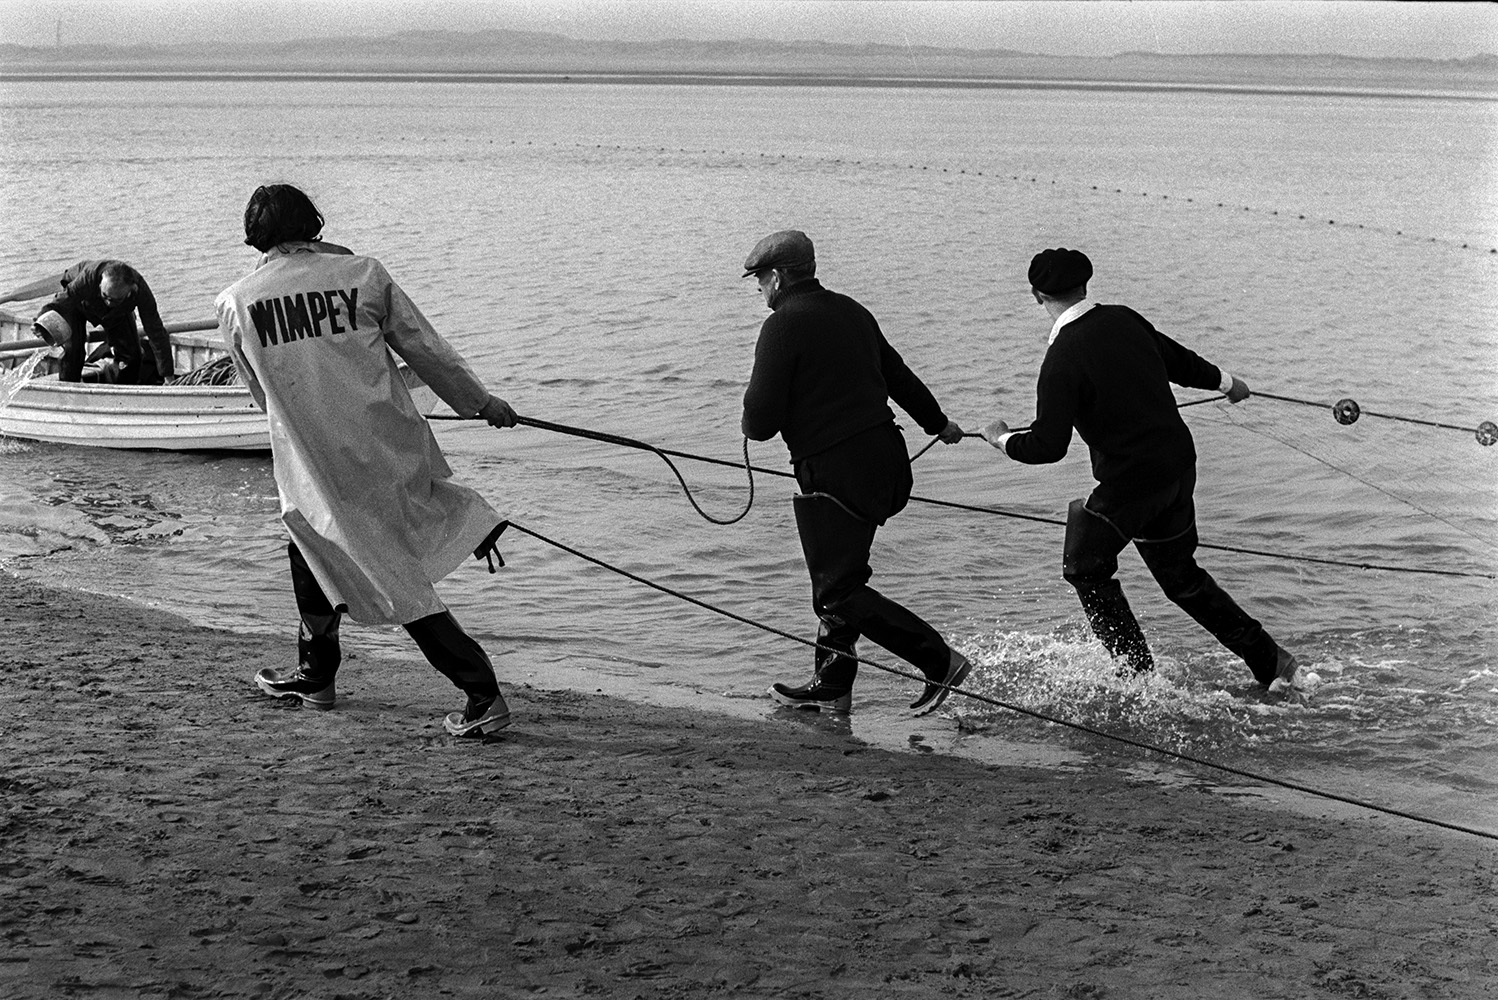 Men hauling in a large fishing net, possibly at Appledore. One of them is wearing a coat with the word'Wimpey' written on the back. Another man is in a rowing boat nearby. Land can be seen on the horizon.